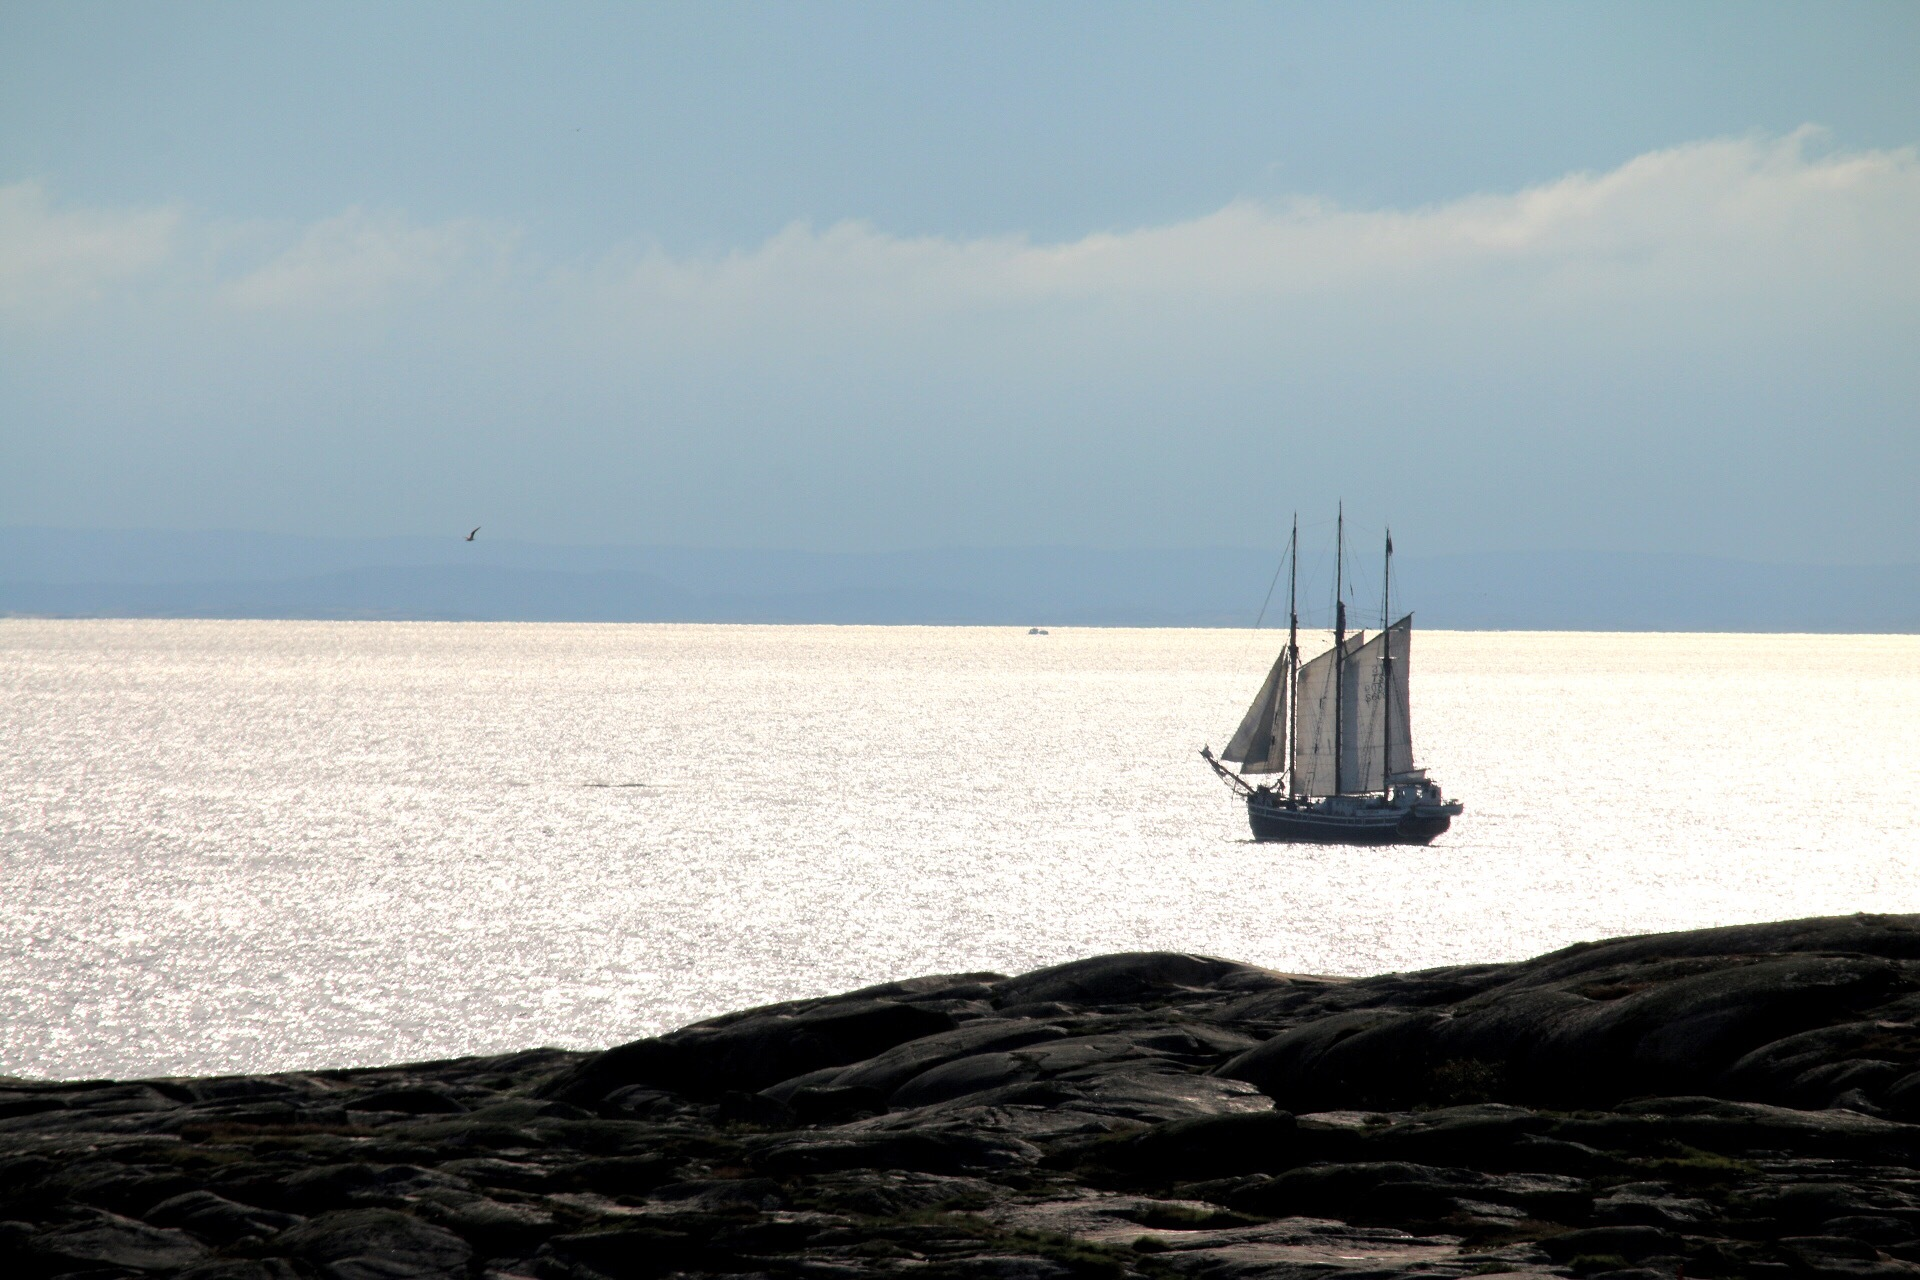 Silver sea by Ingstina